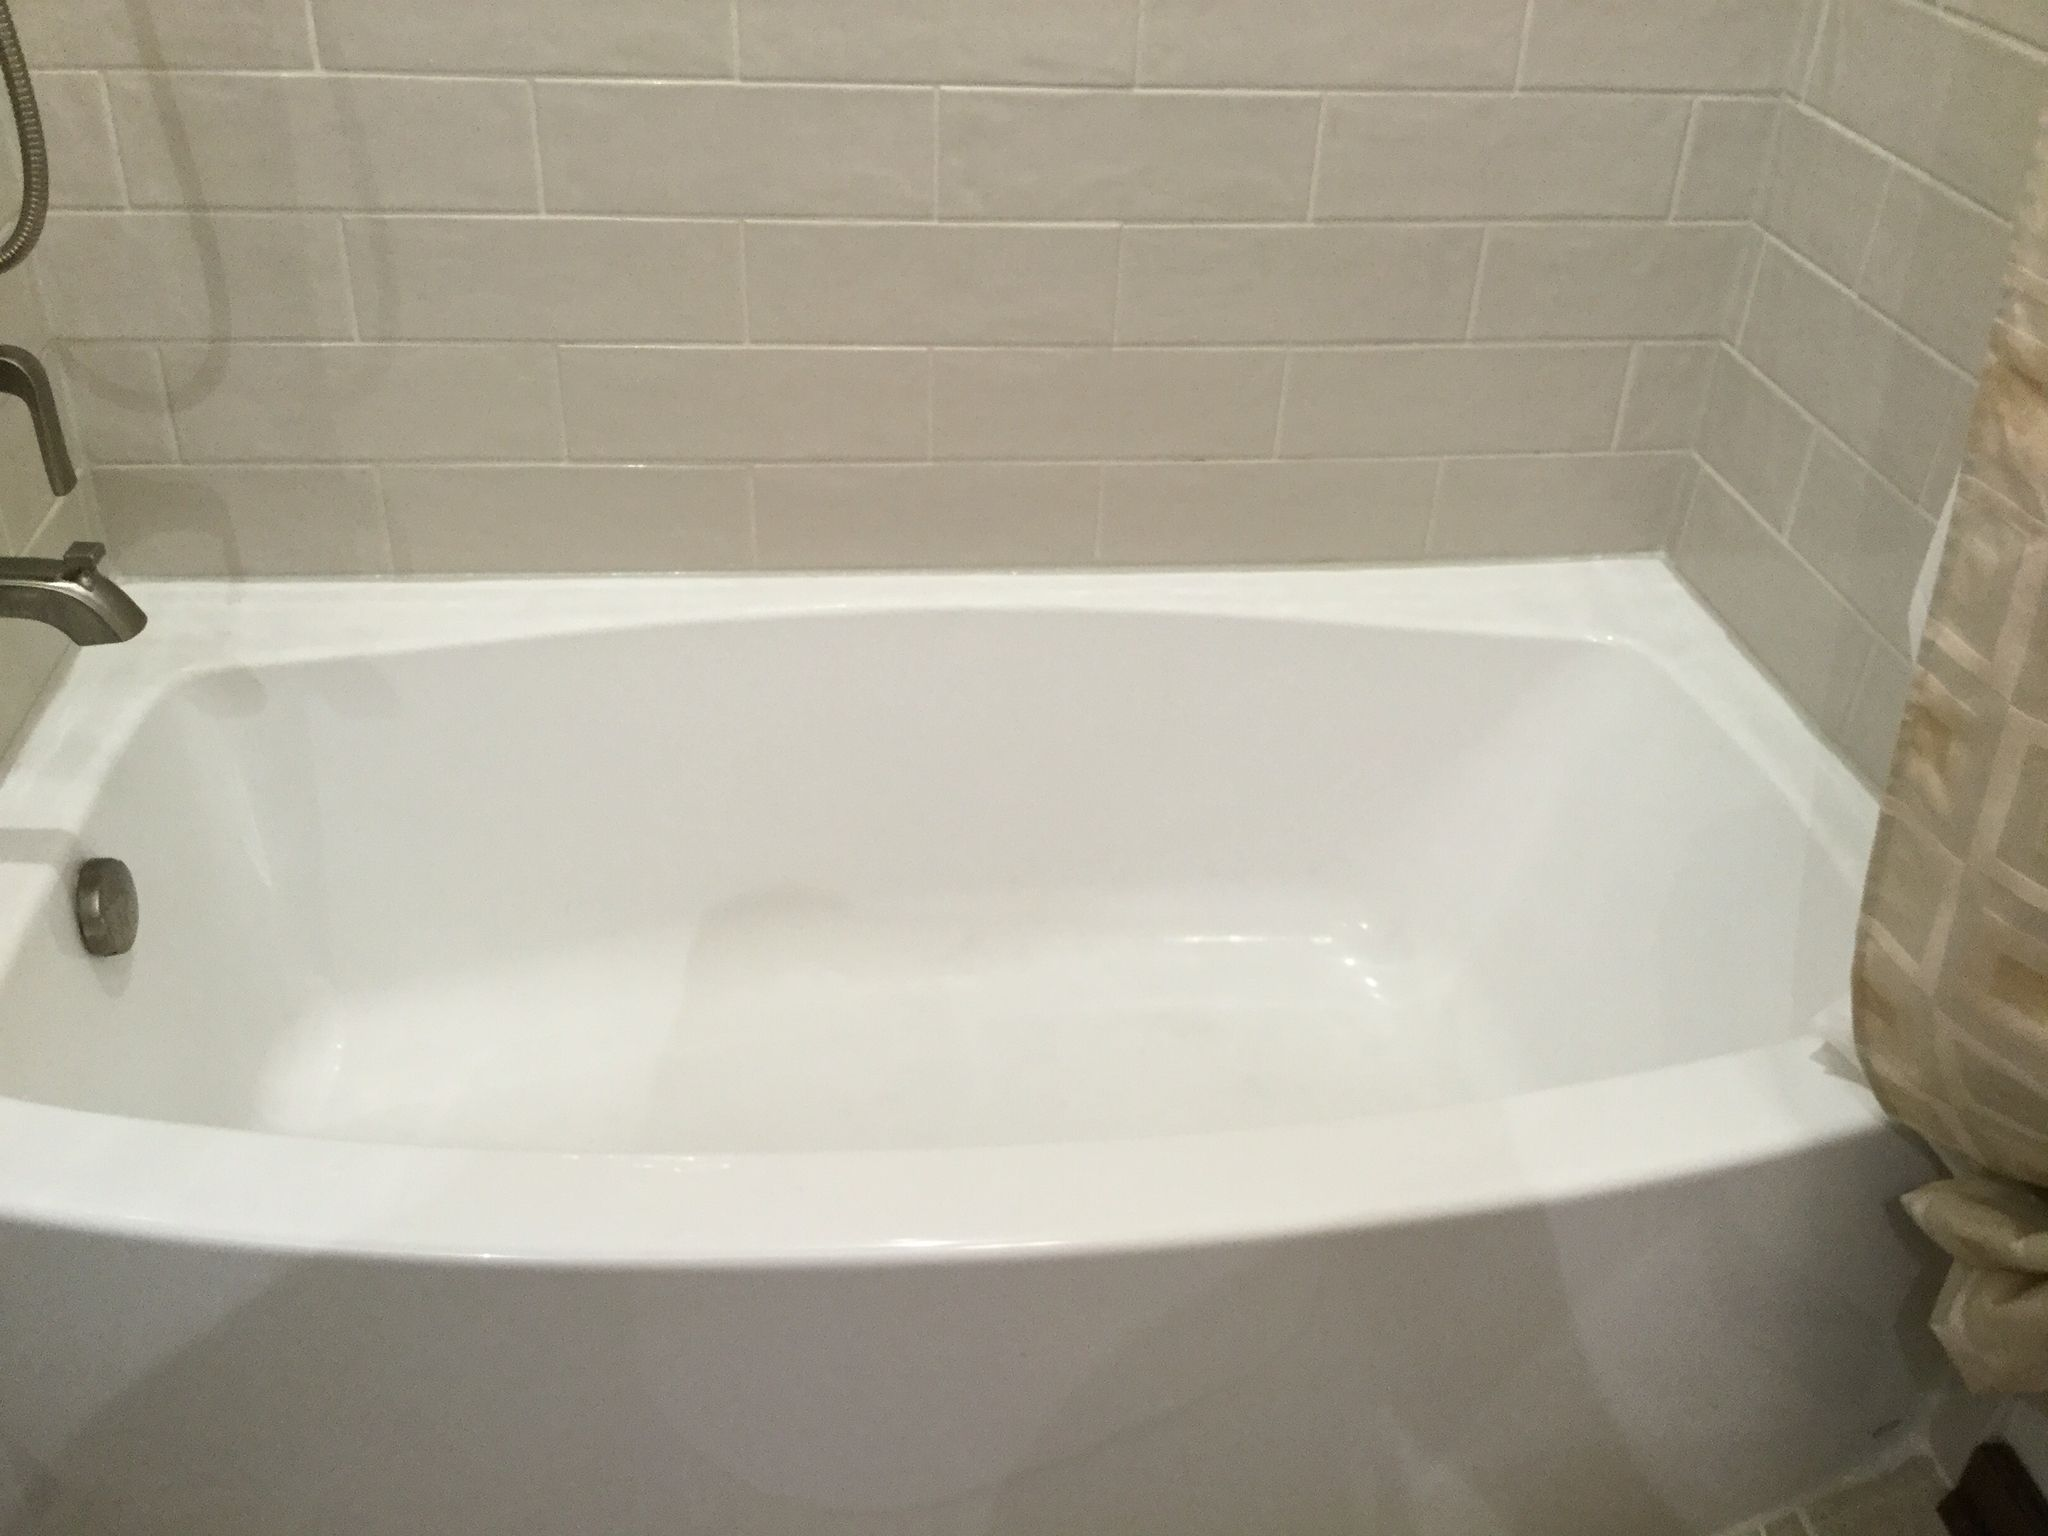 kohler expanse bathtub bathtub surround tile marazzi middleton square latte - Kohler Bathtubs